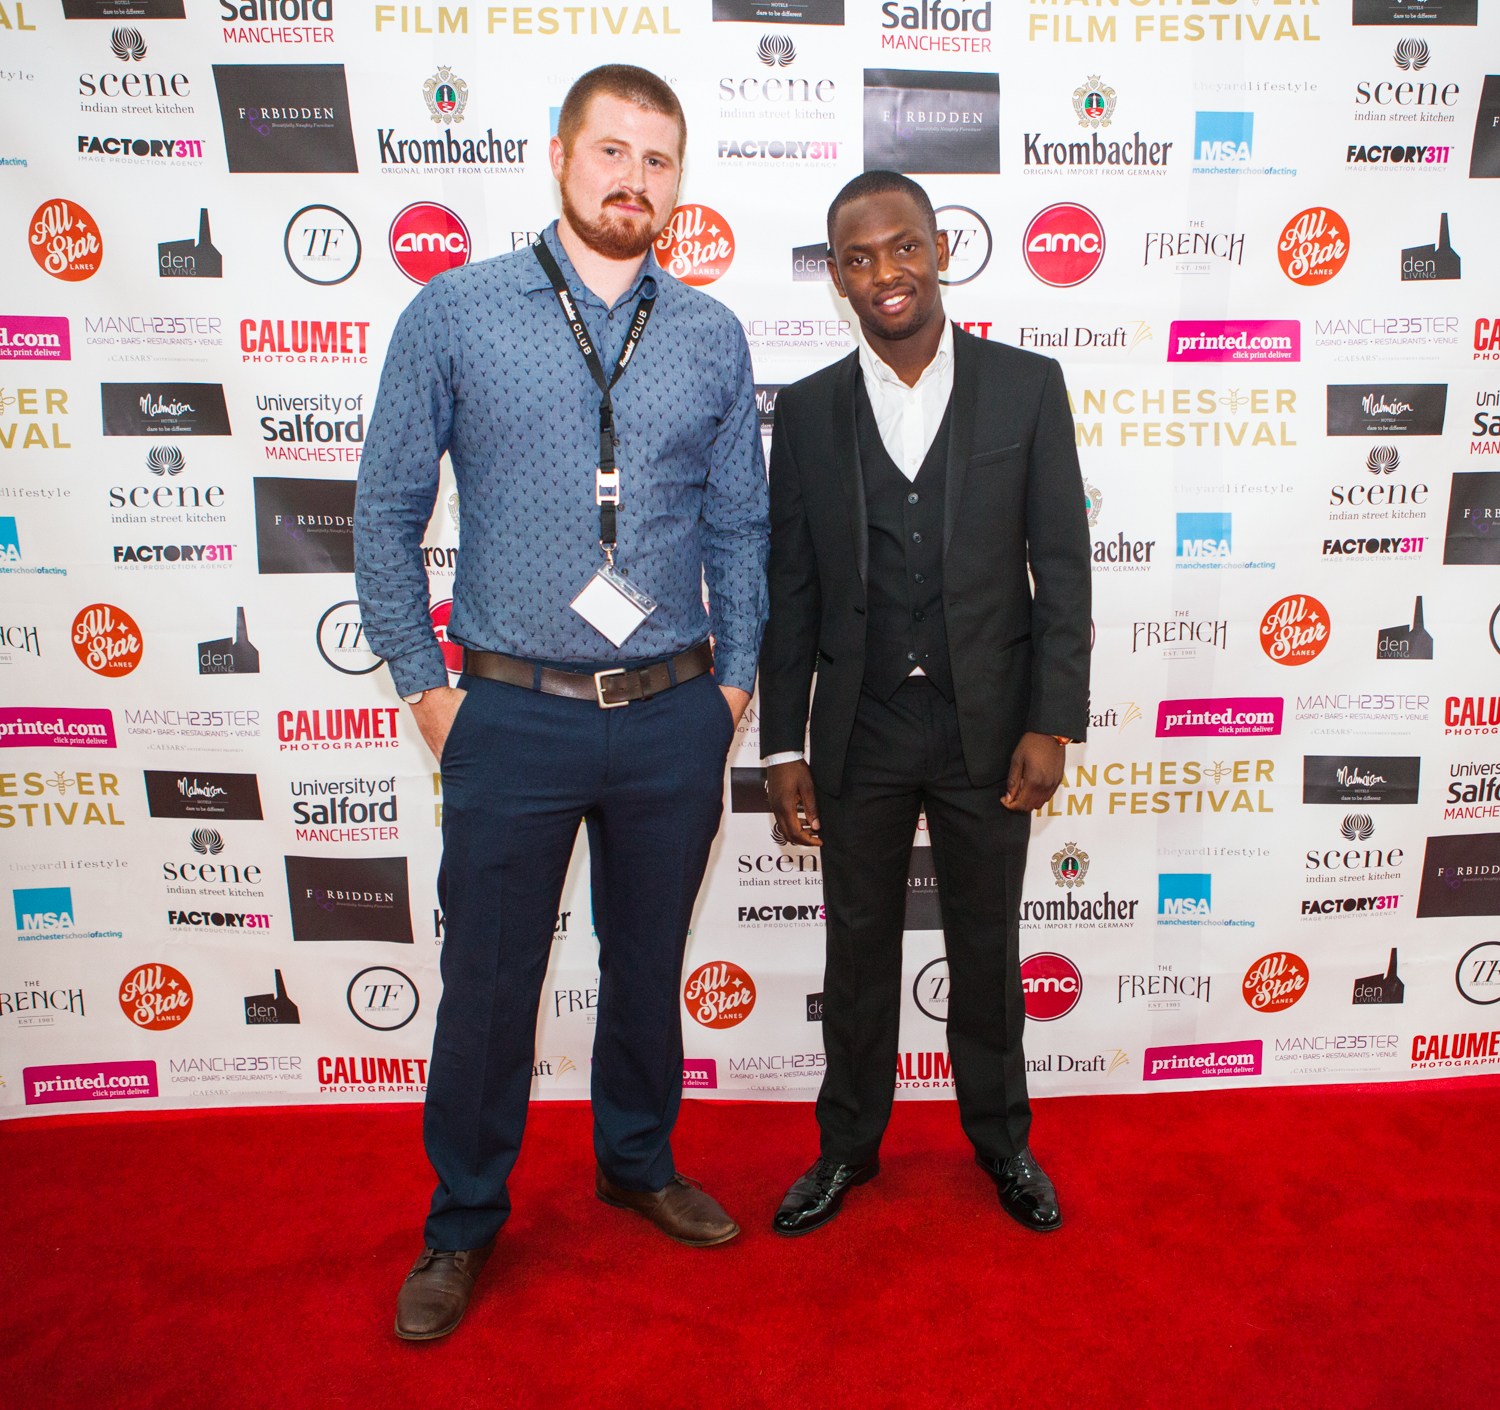 'One word' director Caleb shaffer and his outstanding lead actor Joshua Okusanya.